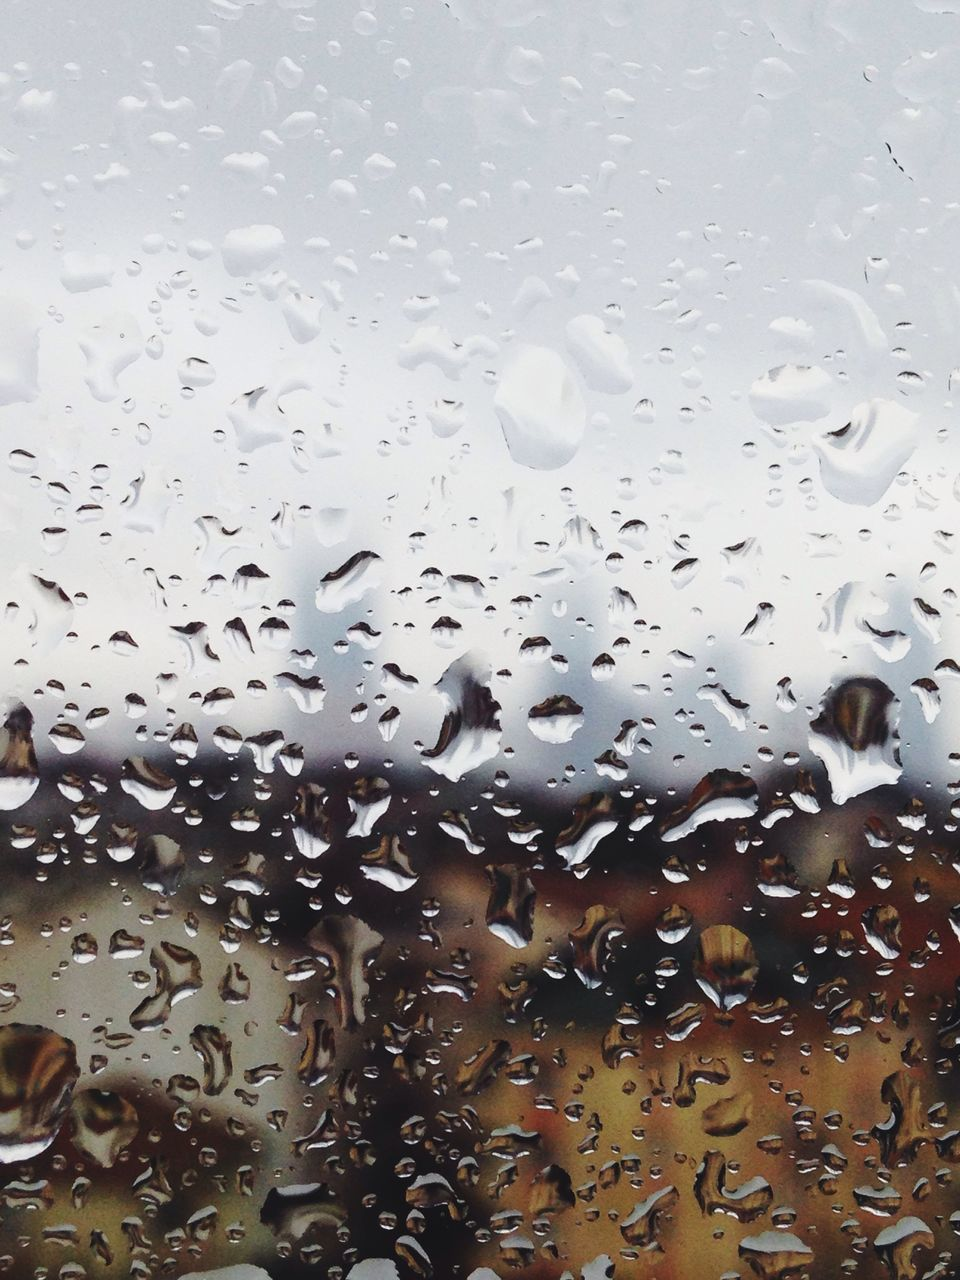 drop, window, wet, rain, water, car, no people, raindrop, full frame, car interior, land vehicle, backgrounds, indoors, close-up, day, sky